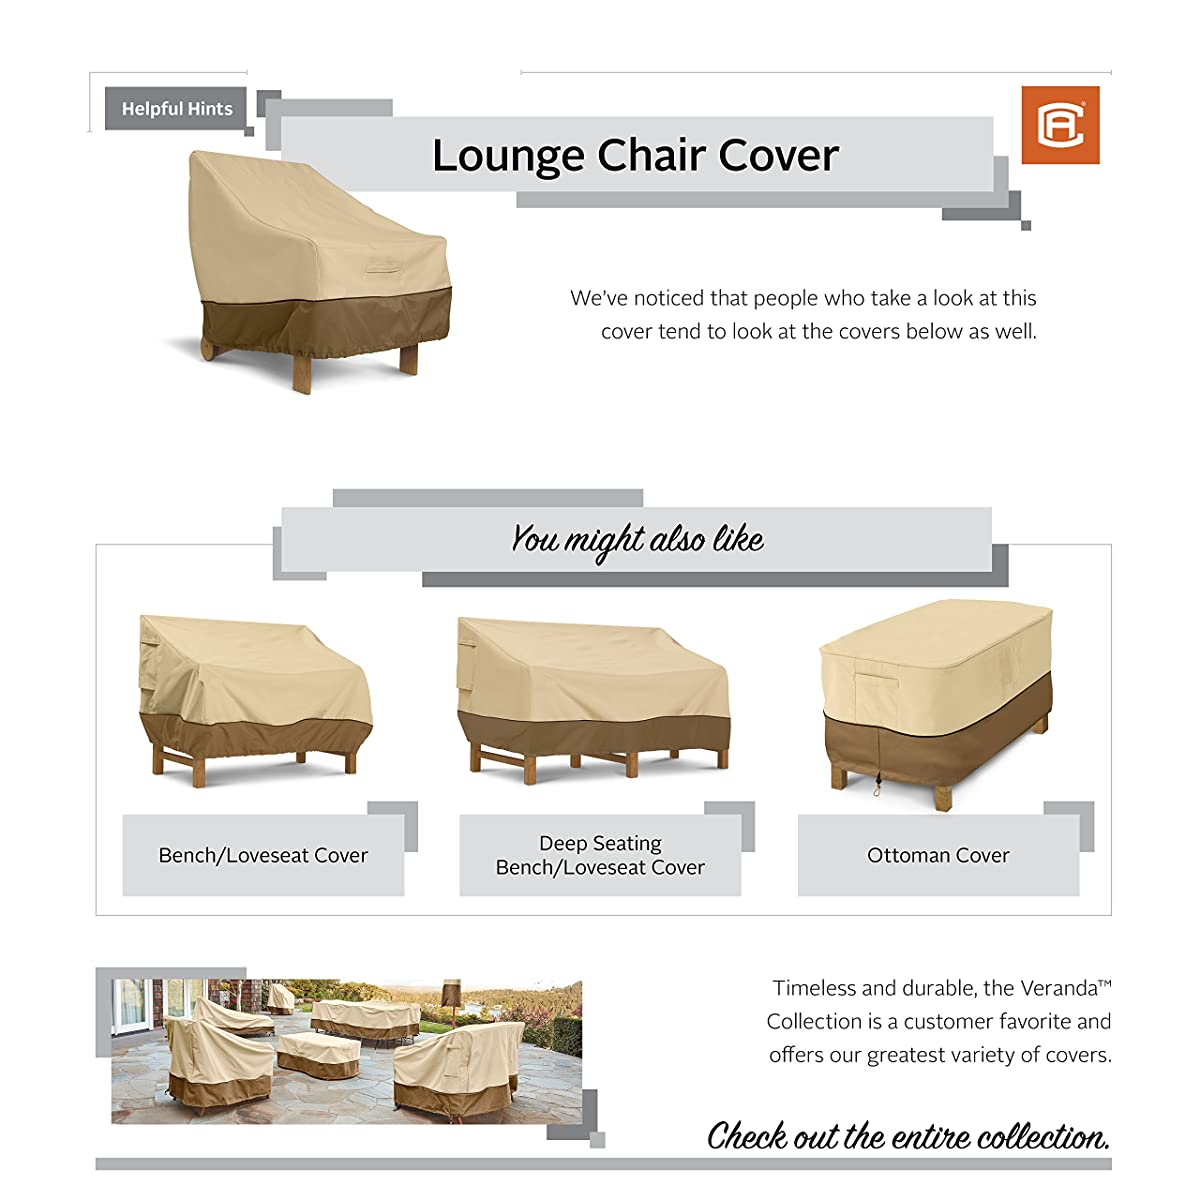 Classic Accessories Veranda Patio Lounge Chair/Club Chair Cover - Durable and Water Resistant Outdoor Furniture Cover, Large